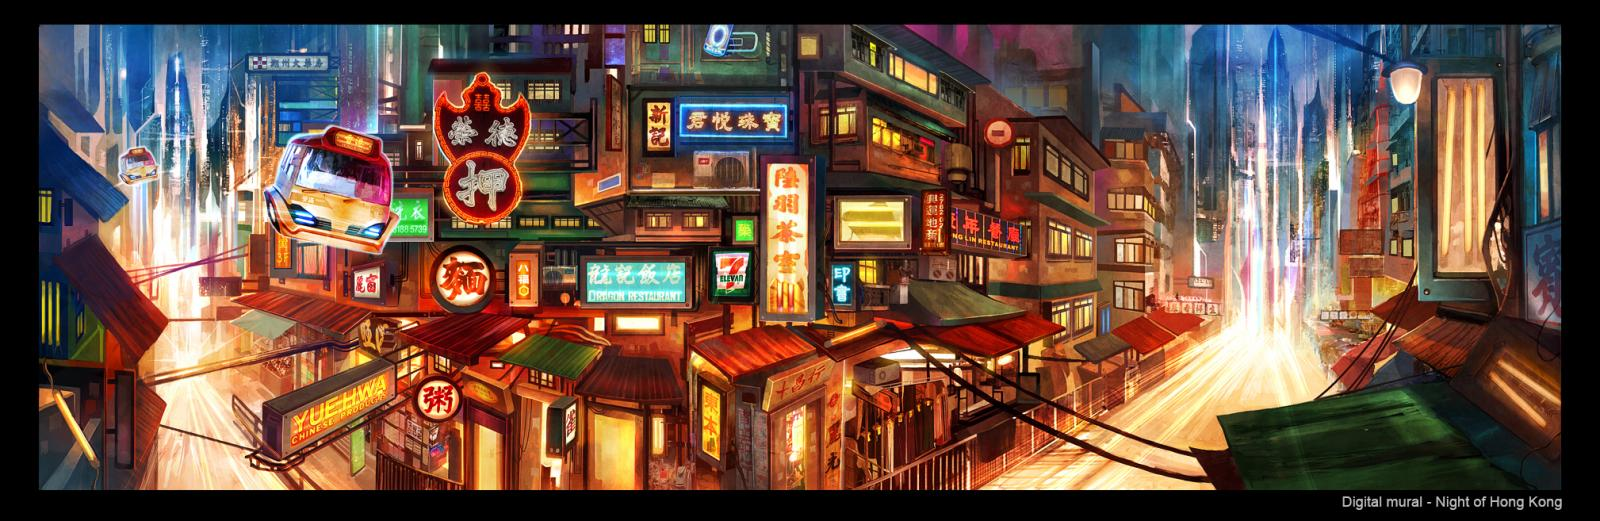 Night of Hong Kong - Digital